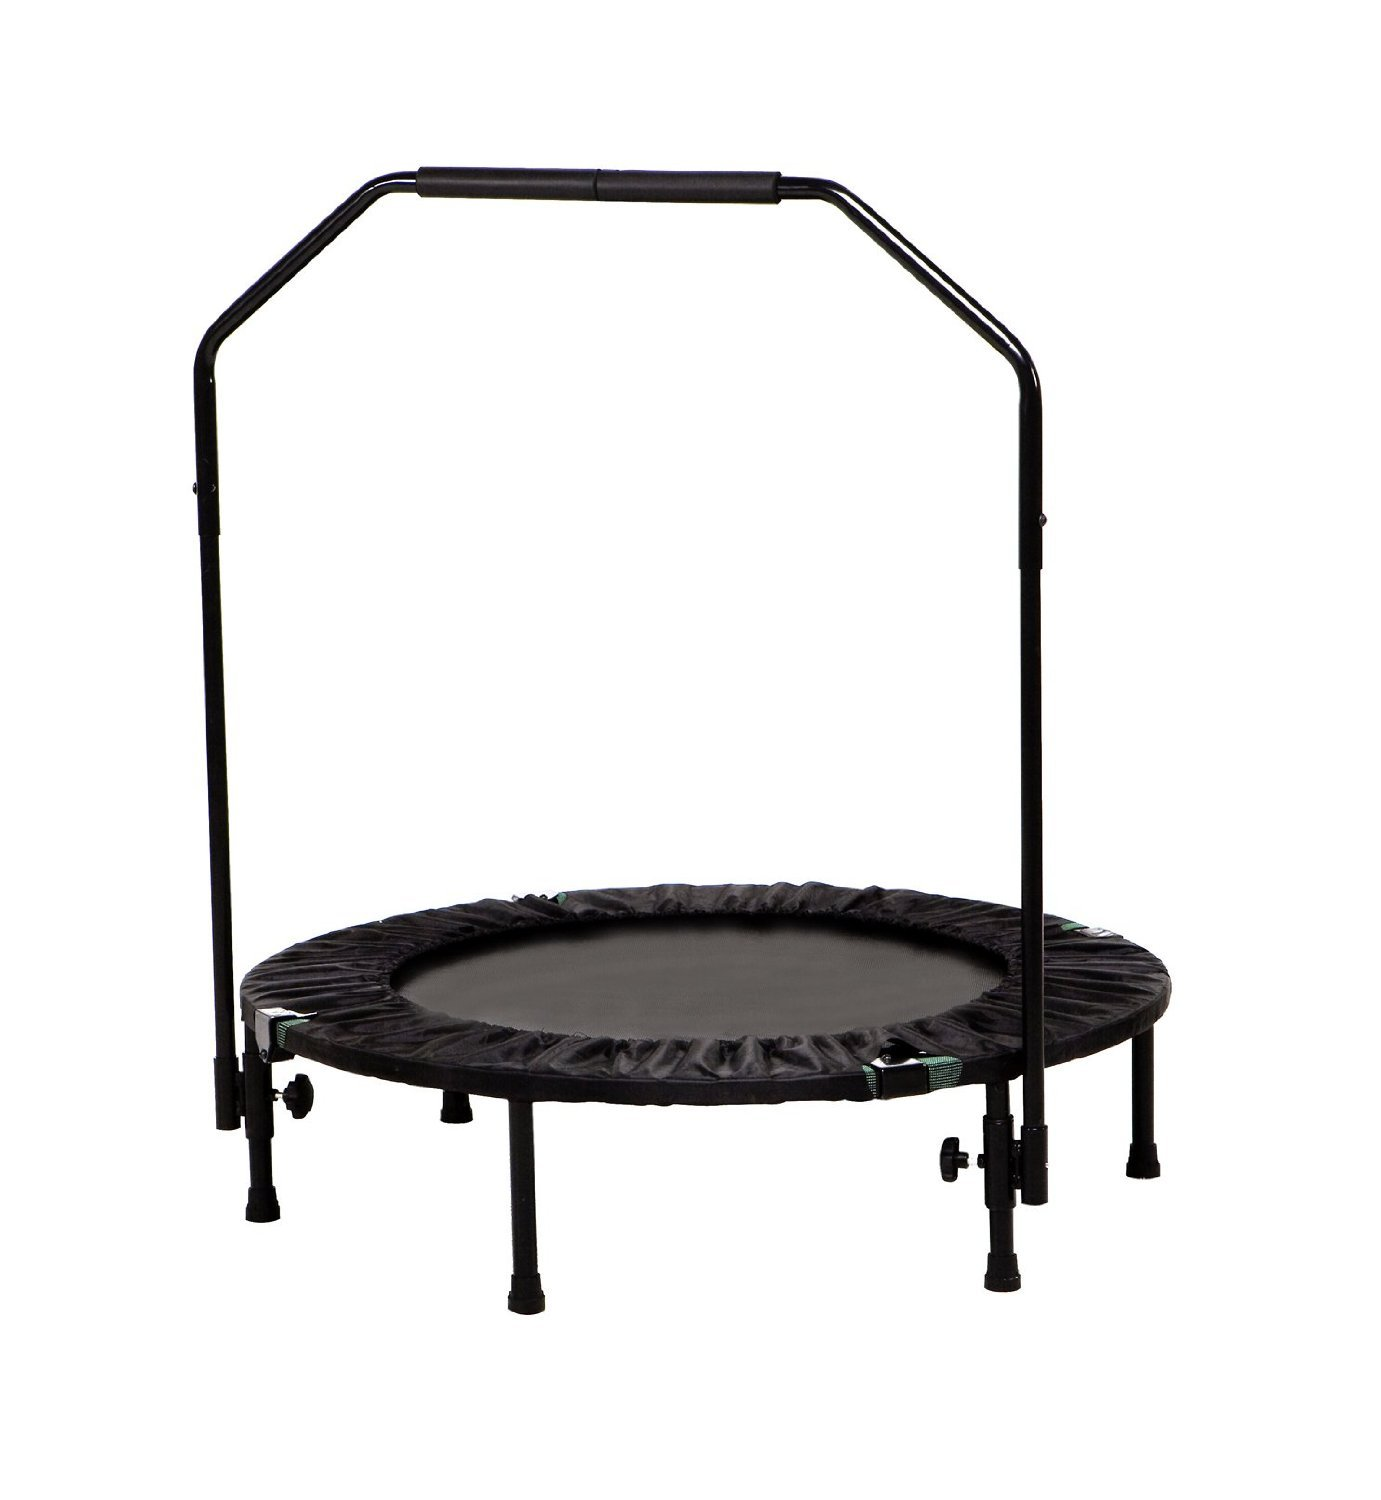 Impex Fitness Marcy Cardio Trampoline Trainer (2 Pack)